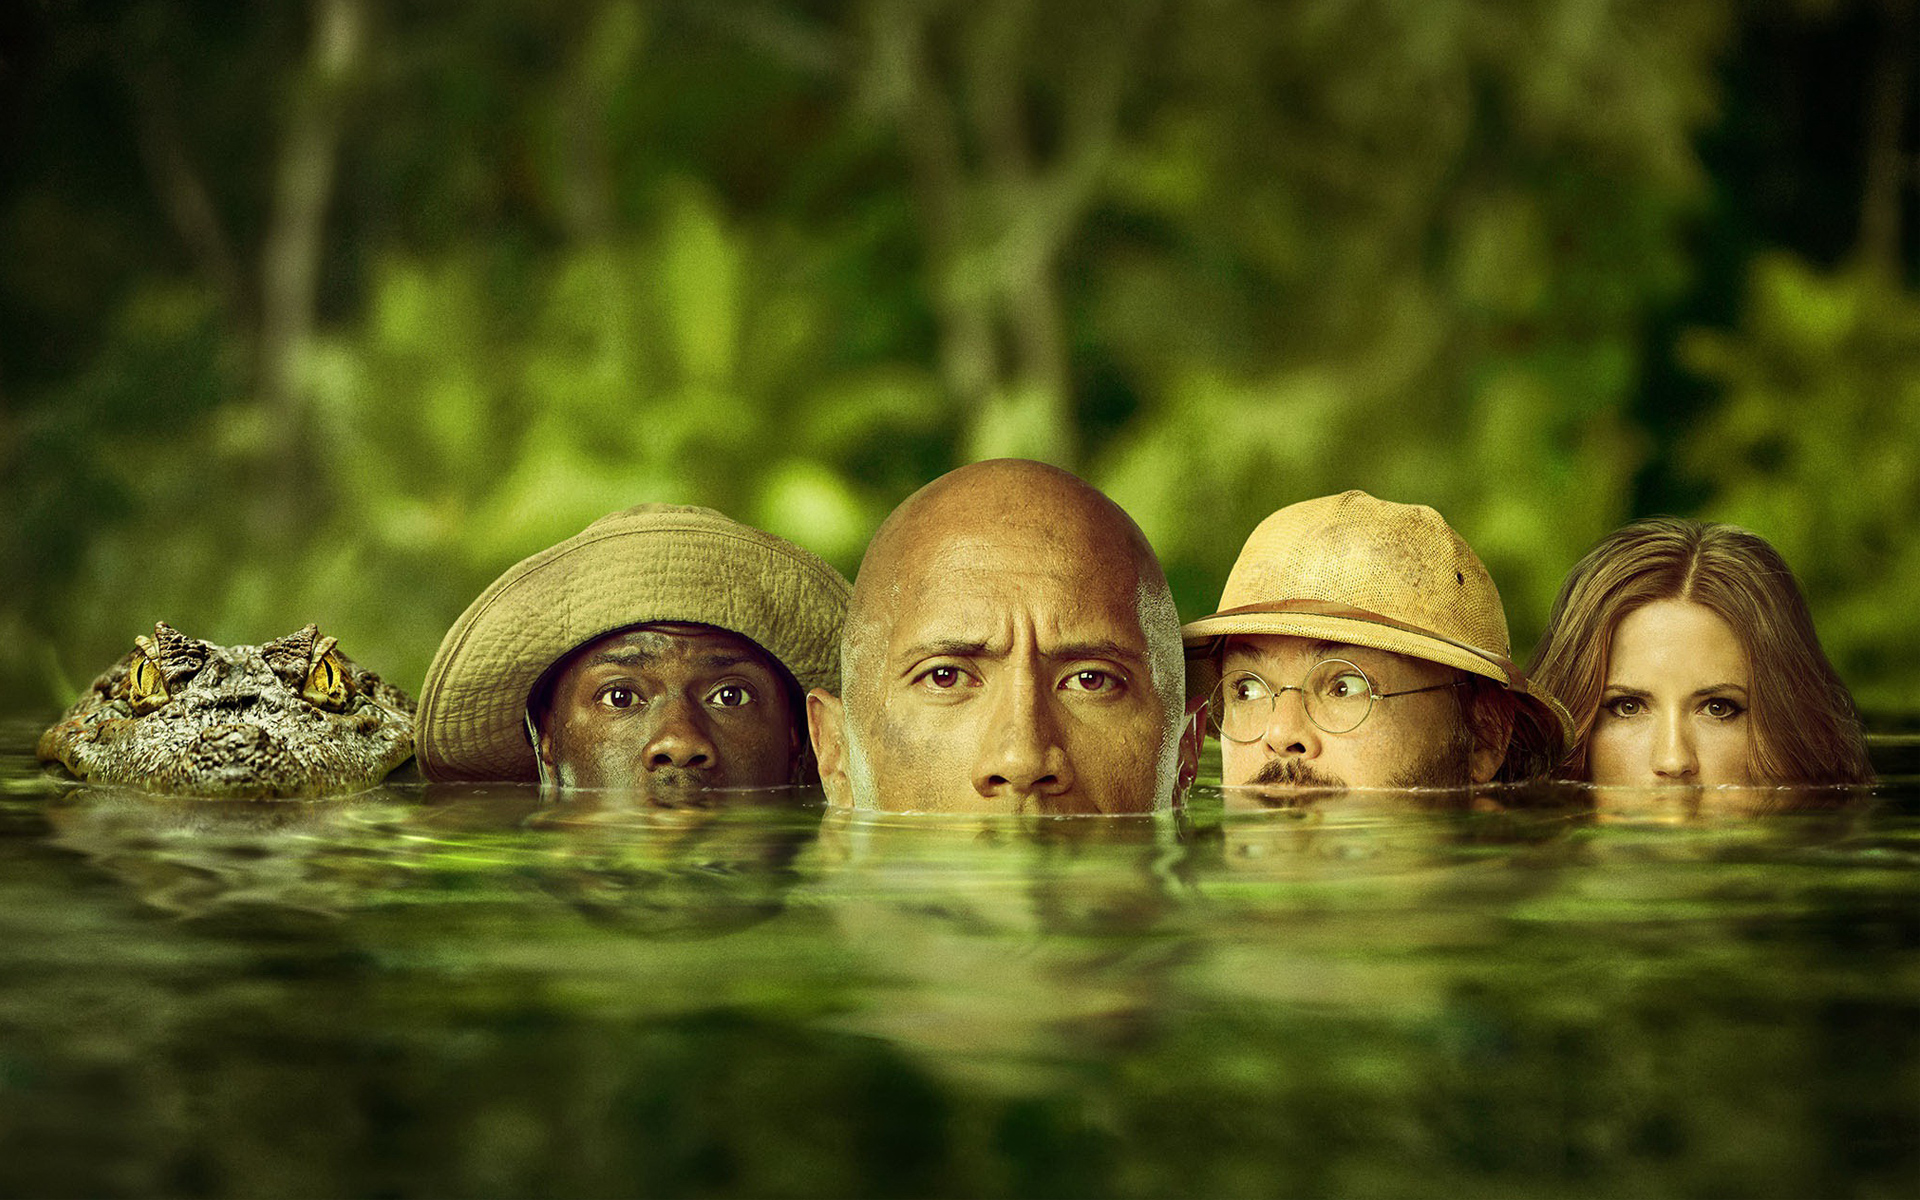 Jumanji Welcome to the Jungle Desktop Wallpaper 62106 1920x1200px 1920x1200